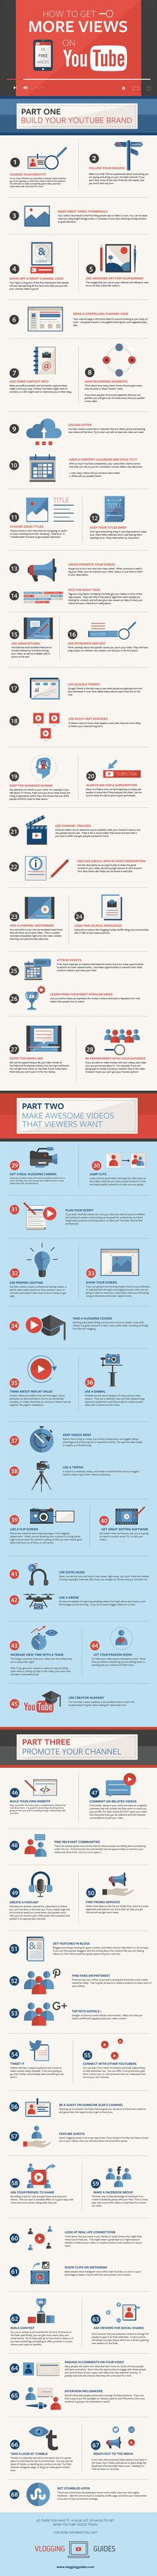 This infographic provides some key tips to help you get more views with your YouTube content.